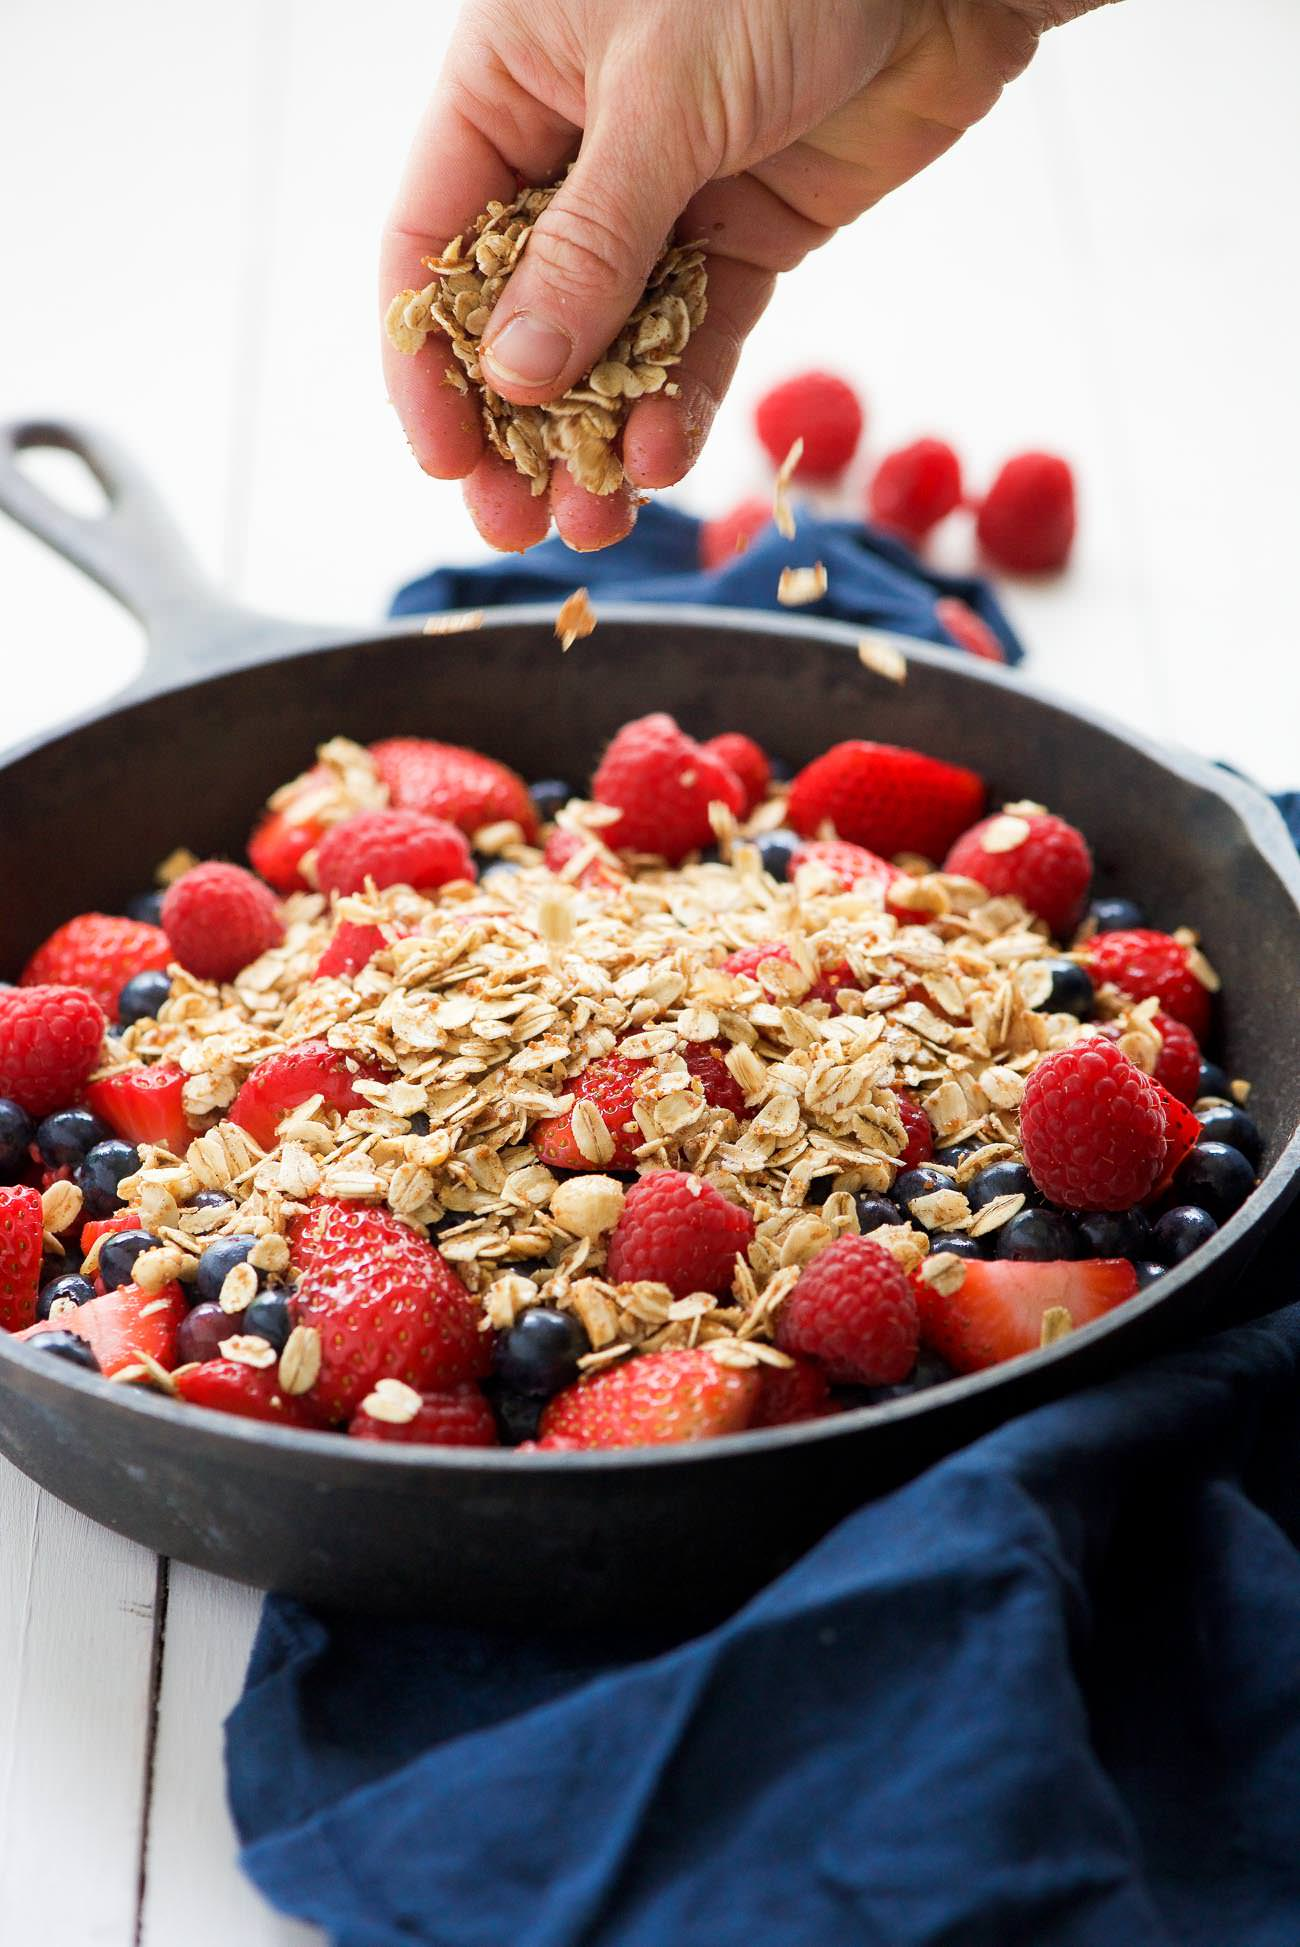 Gluten Free Vanilla Triple Berry Crisp is a simple 8 ingredient dessert that is bursting with fresh berries that bake into a juicy sauce; then topped with a sugary oatmeal topping. A gluten free and vegan dessert that is healthy enough for a breakfast treat!